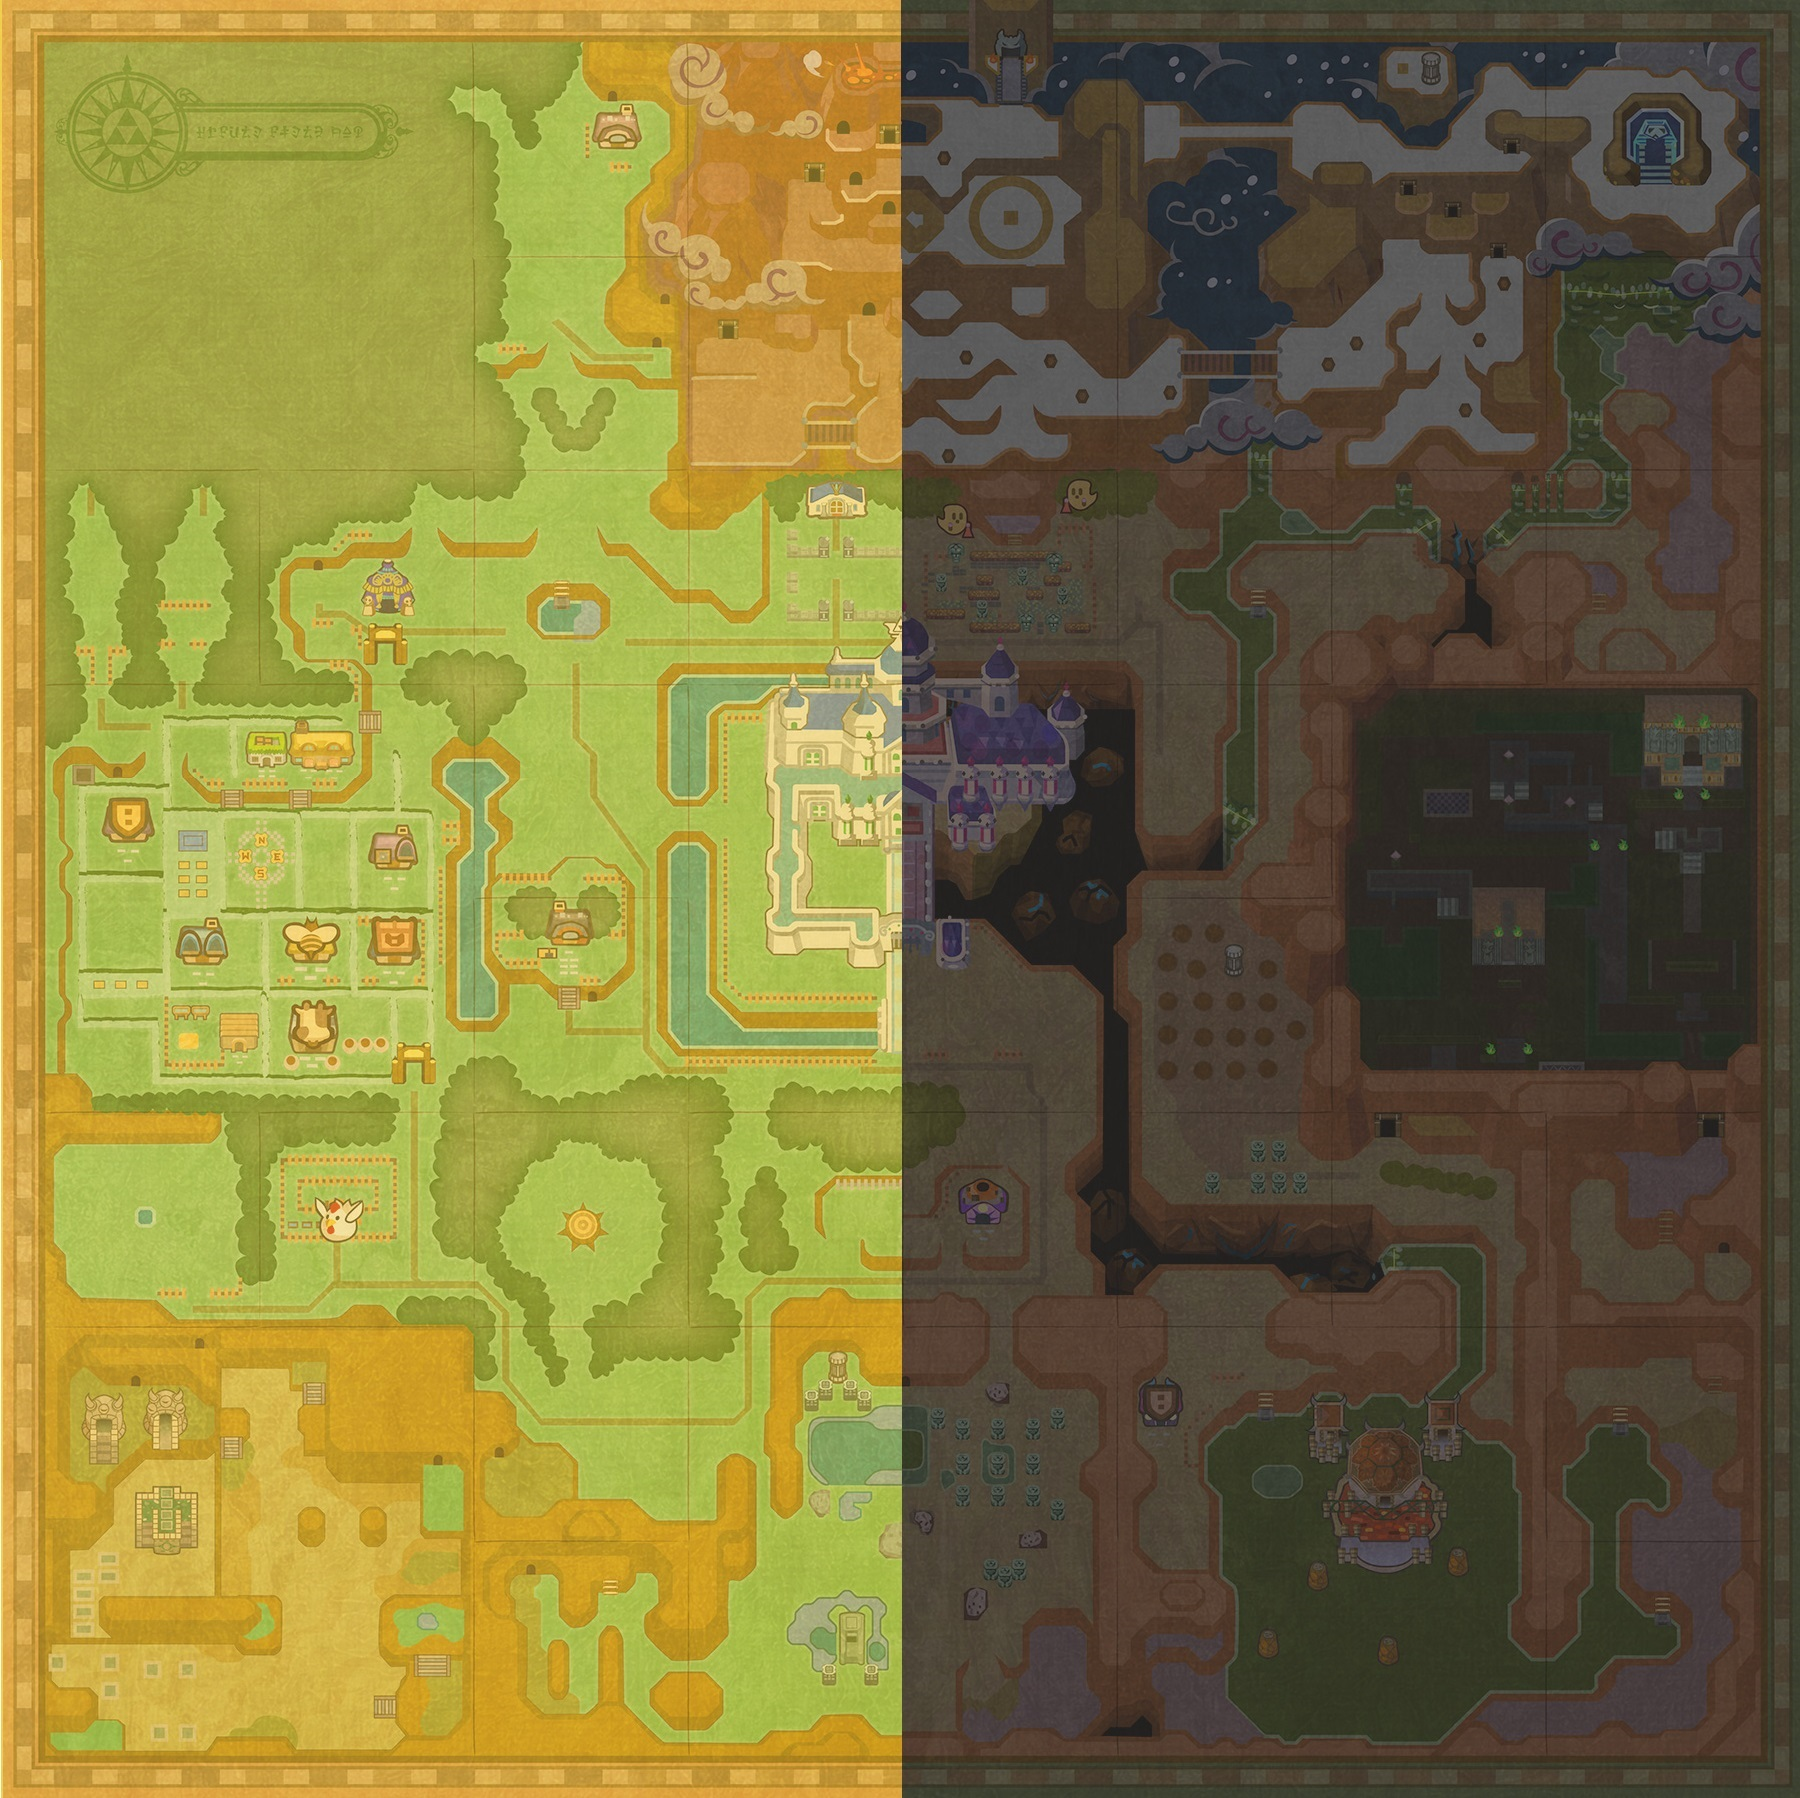 Zelda: A Link Between Worlds - a look at the overworld map ...